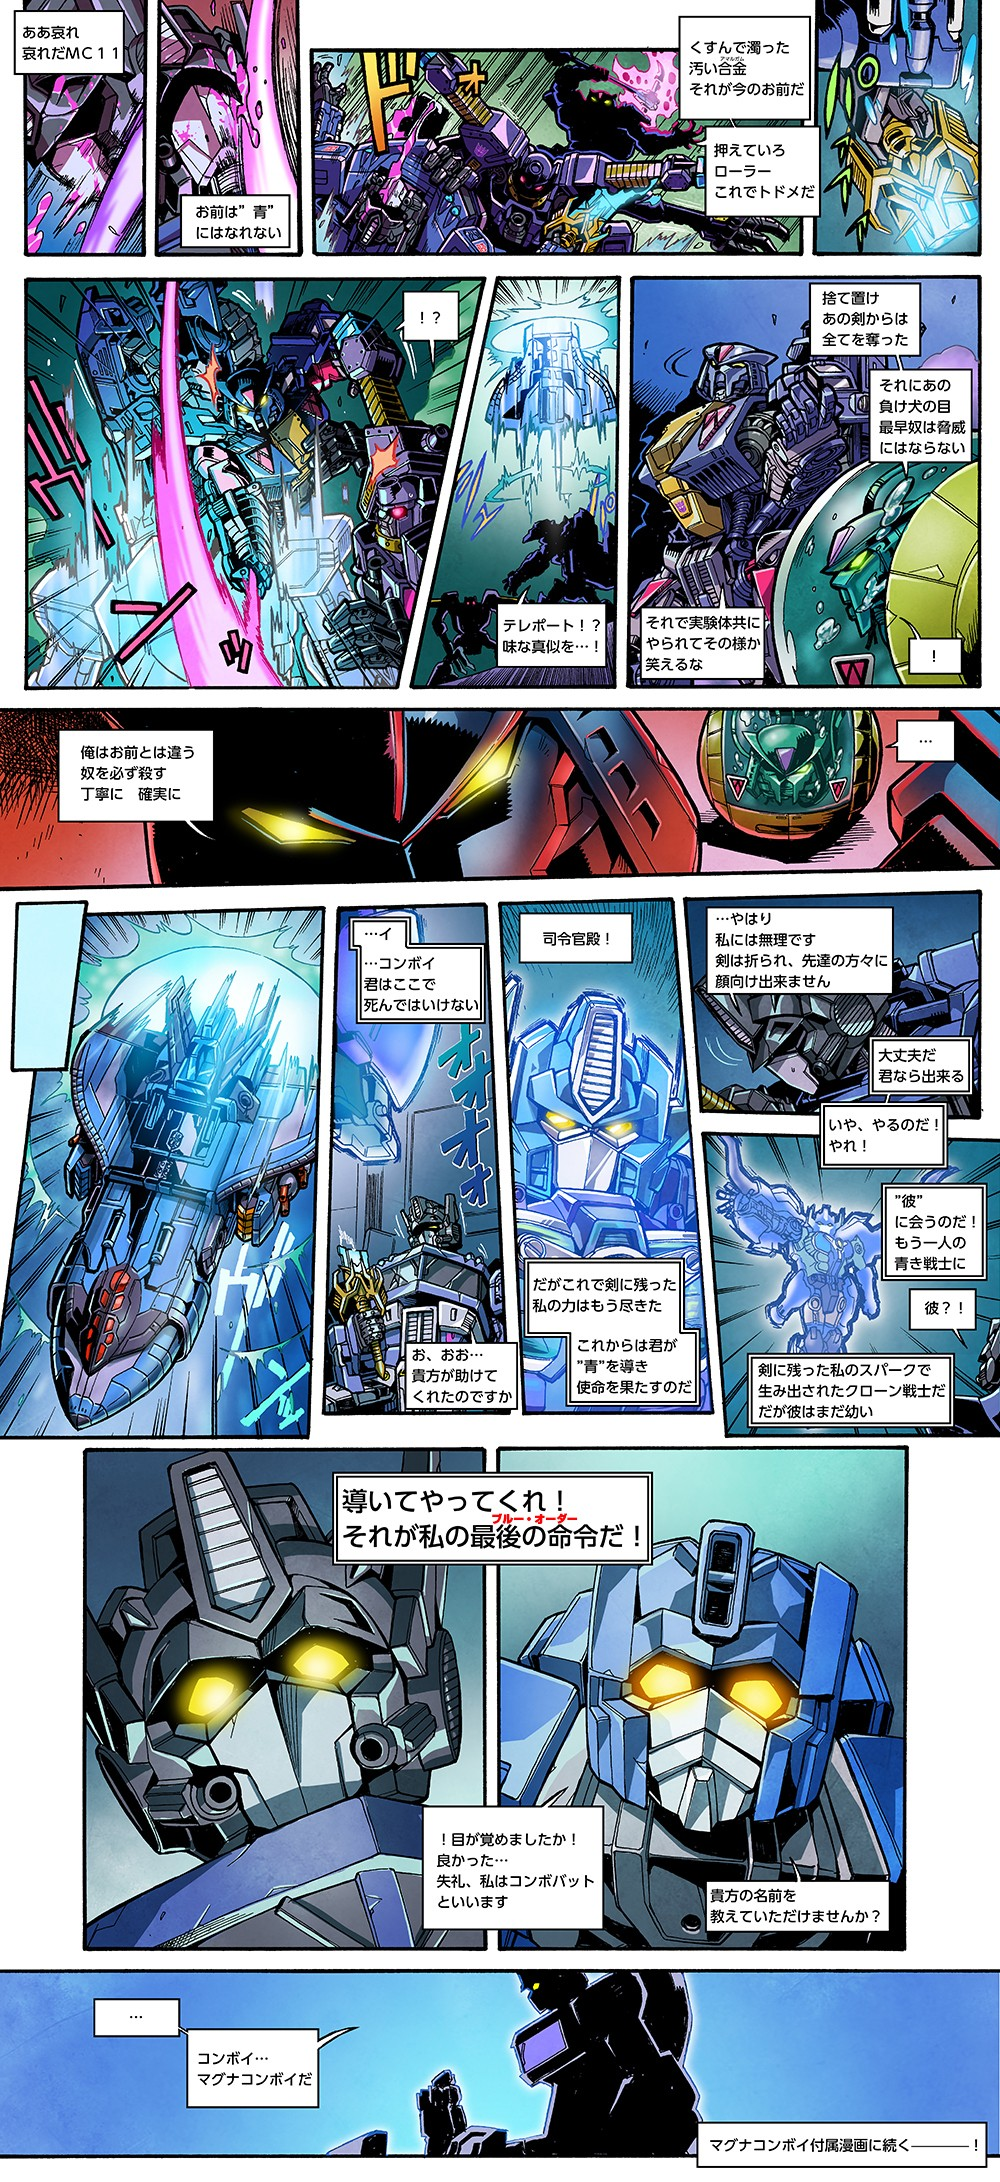 Transformers News: e-HOBBY Magna Convoy Comic Part 3 Now Online